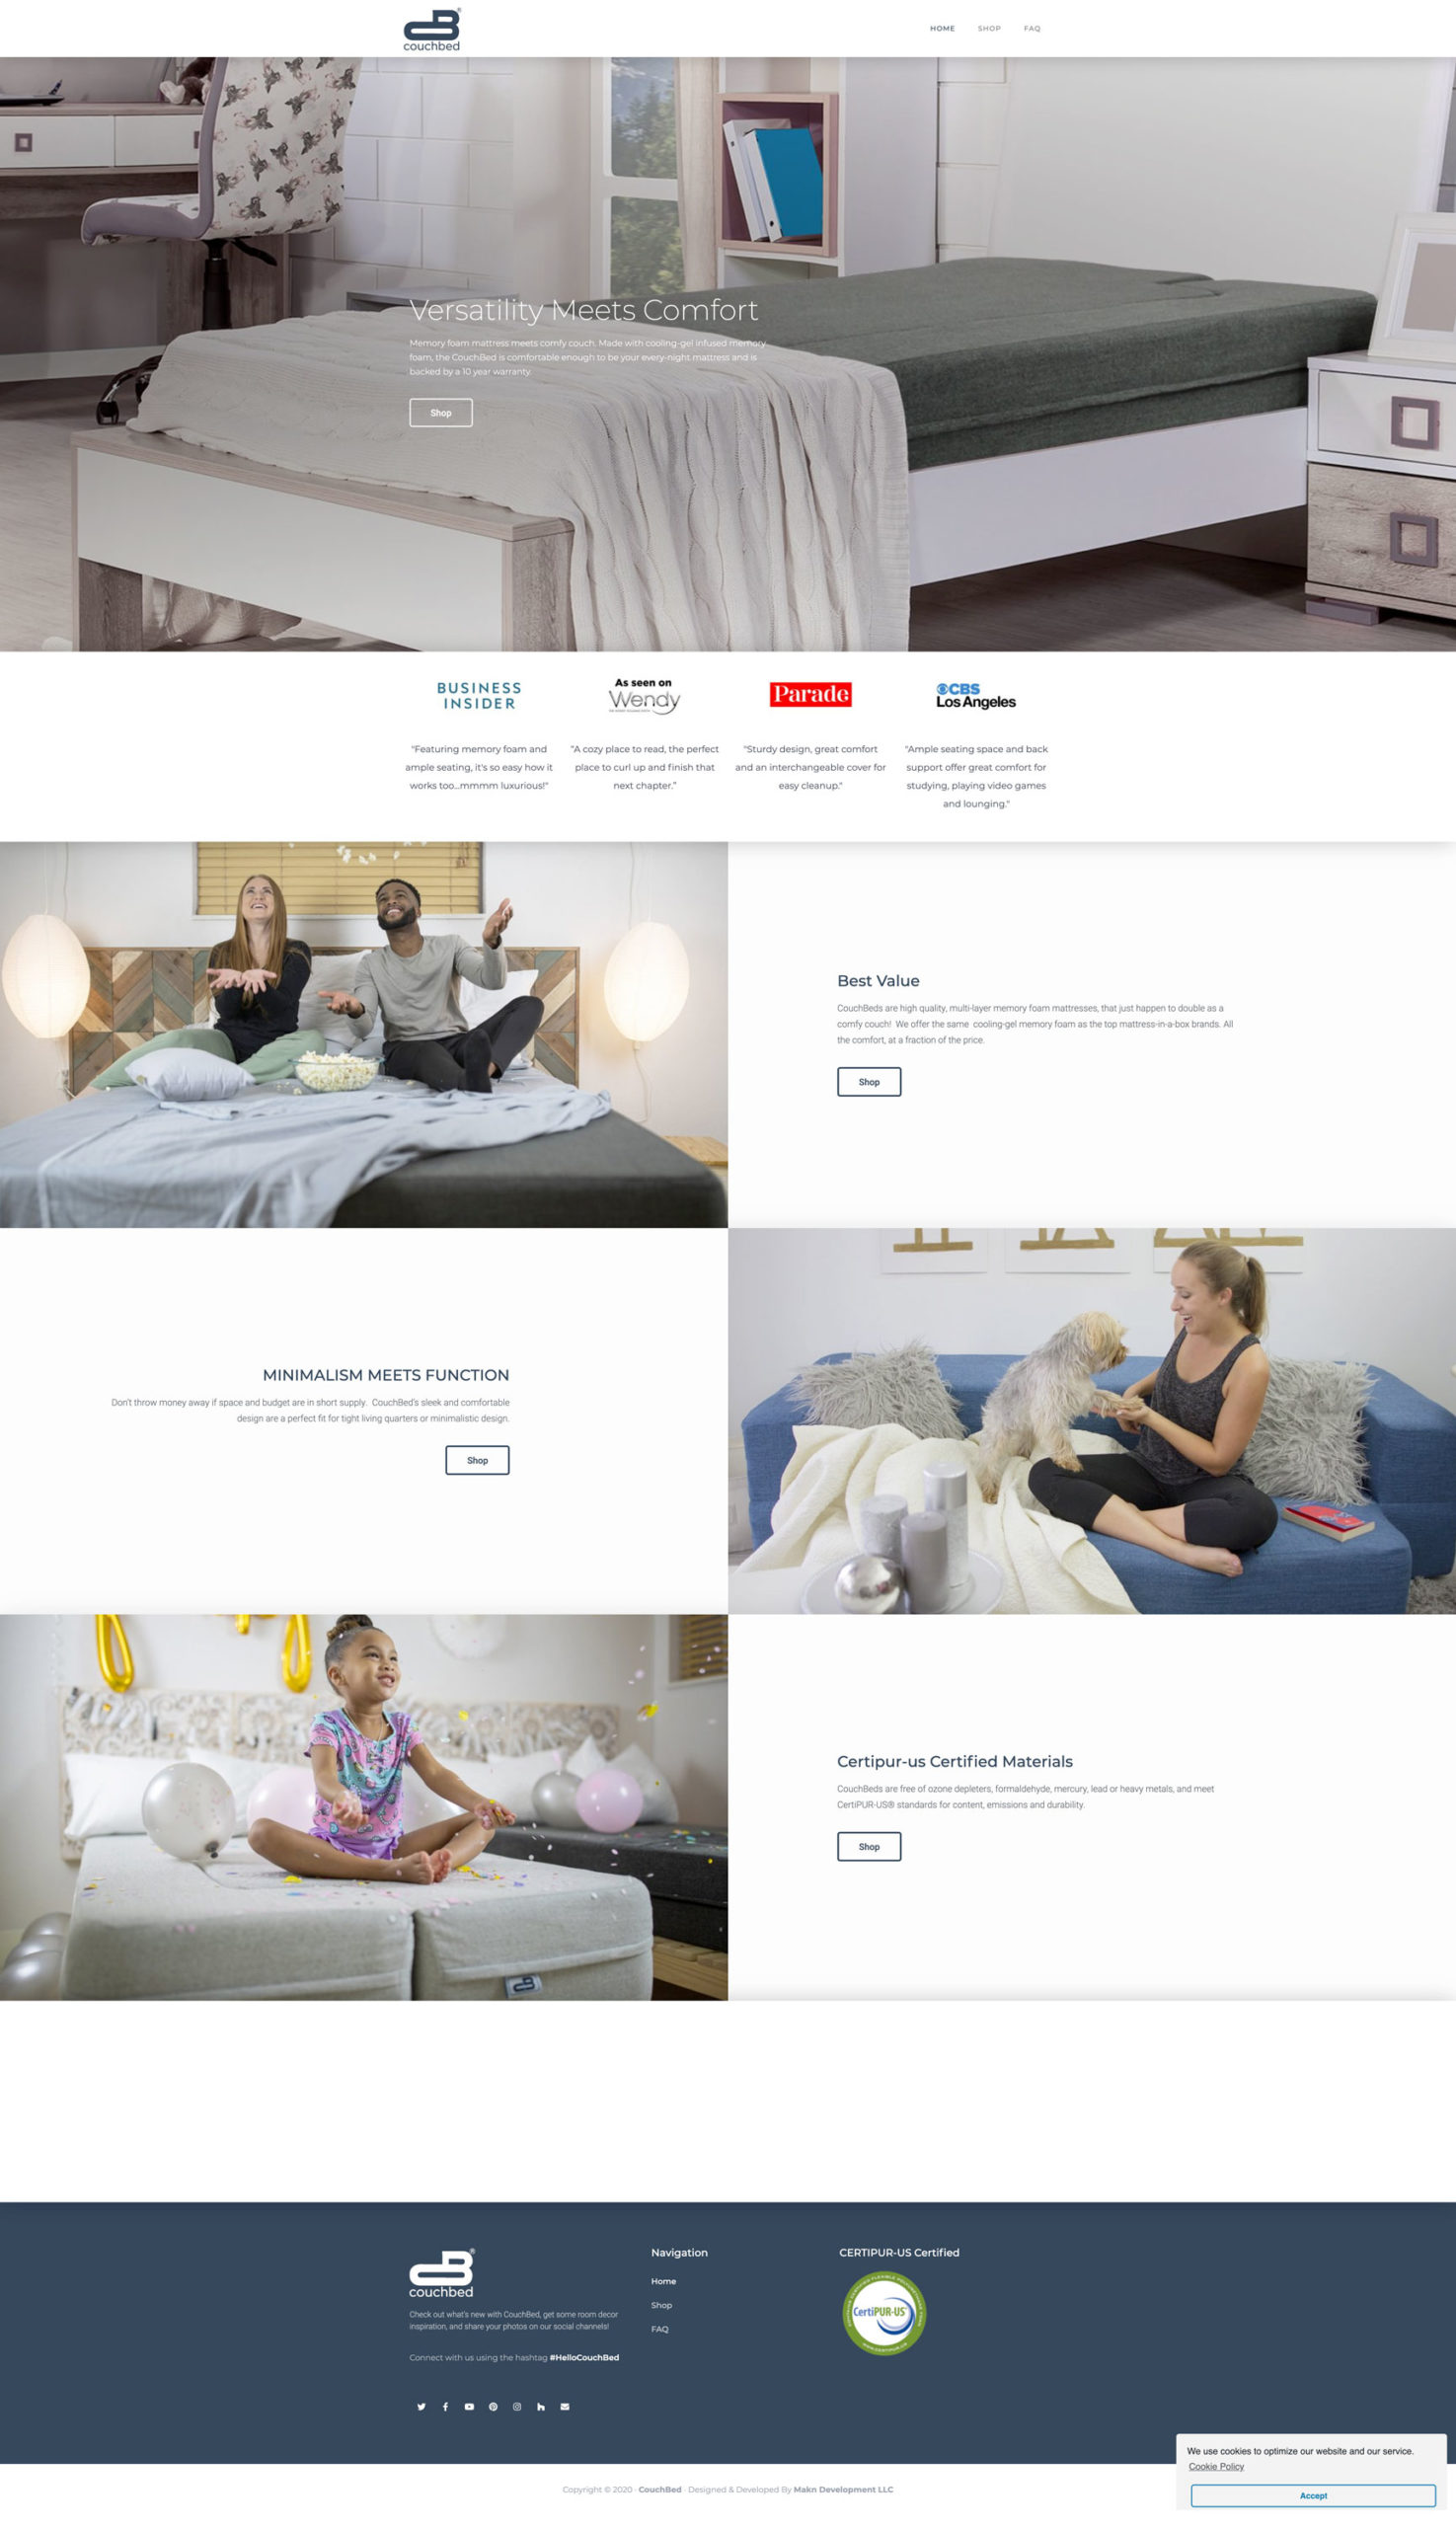 ShopCouchBed Website Example